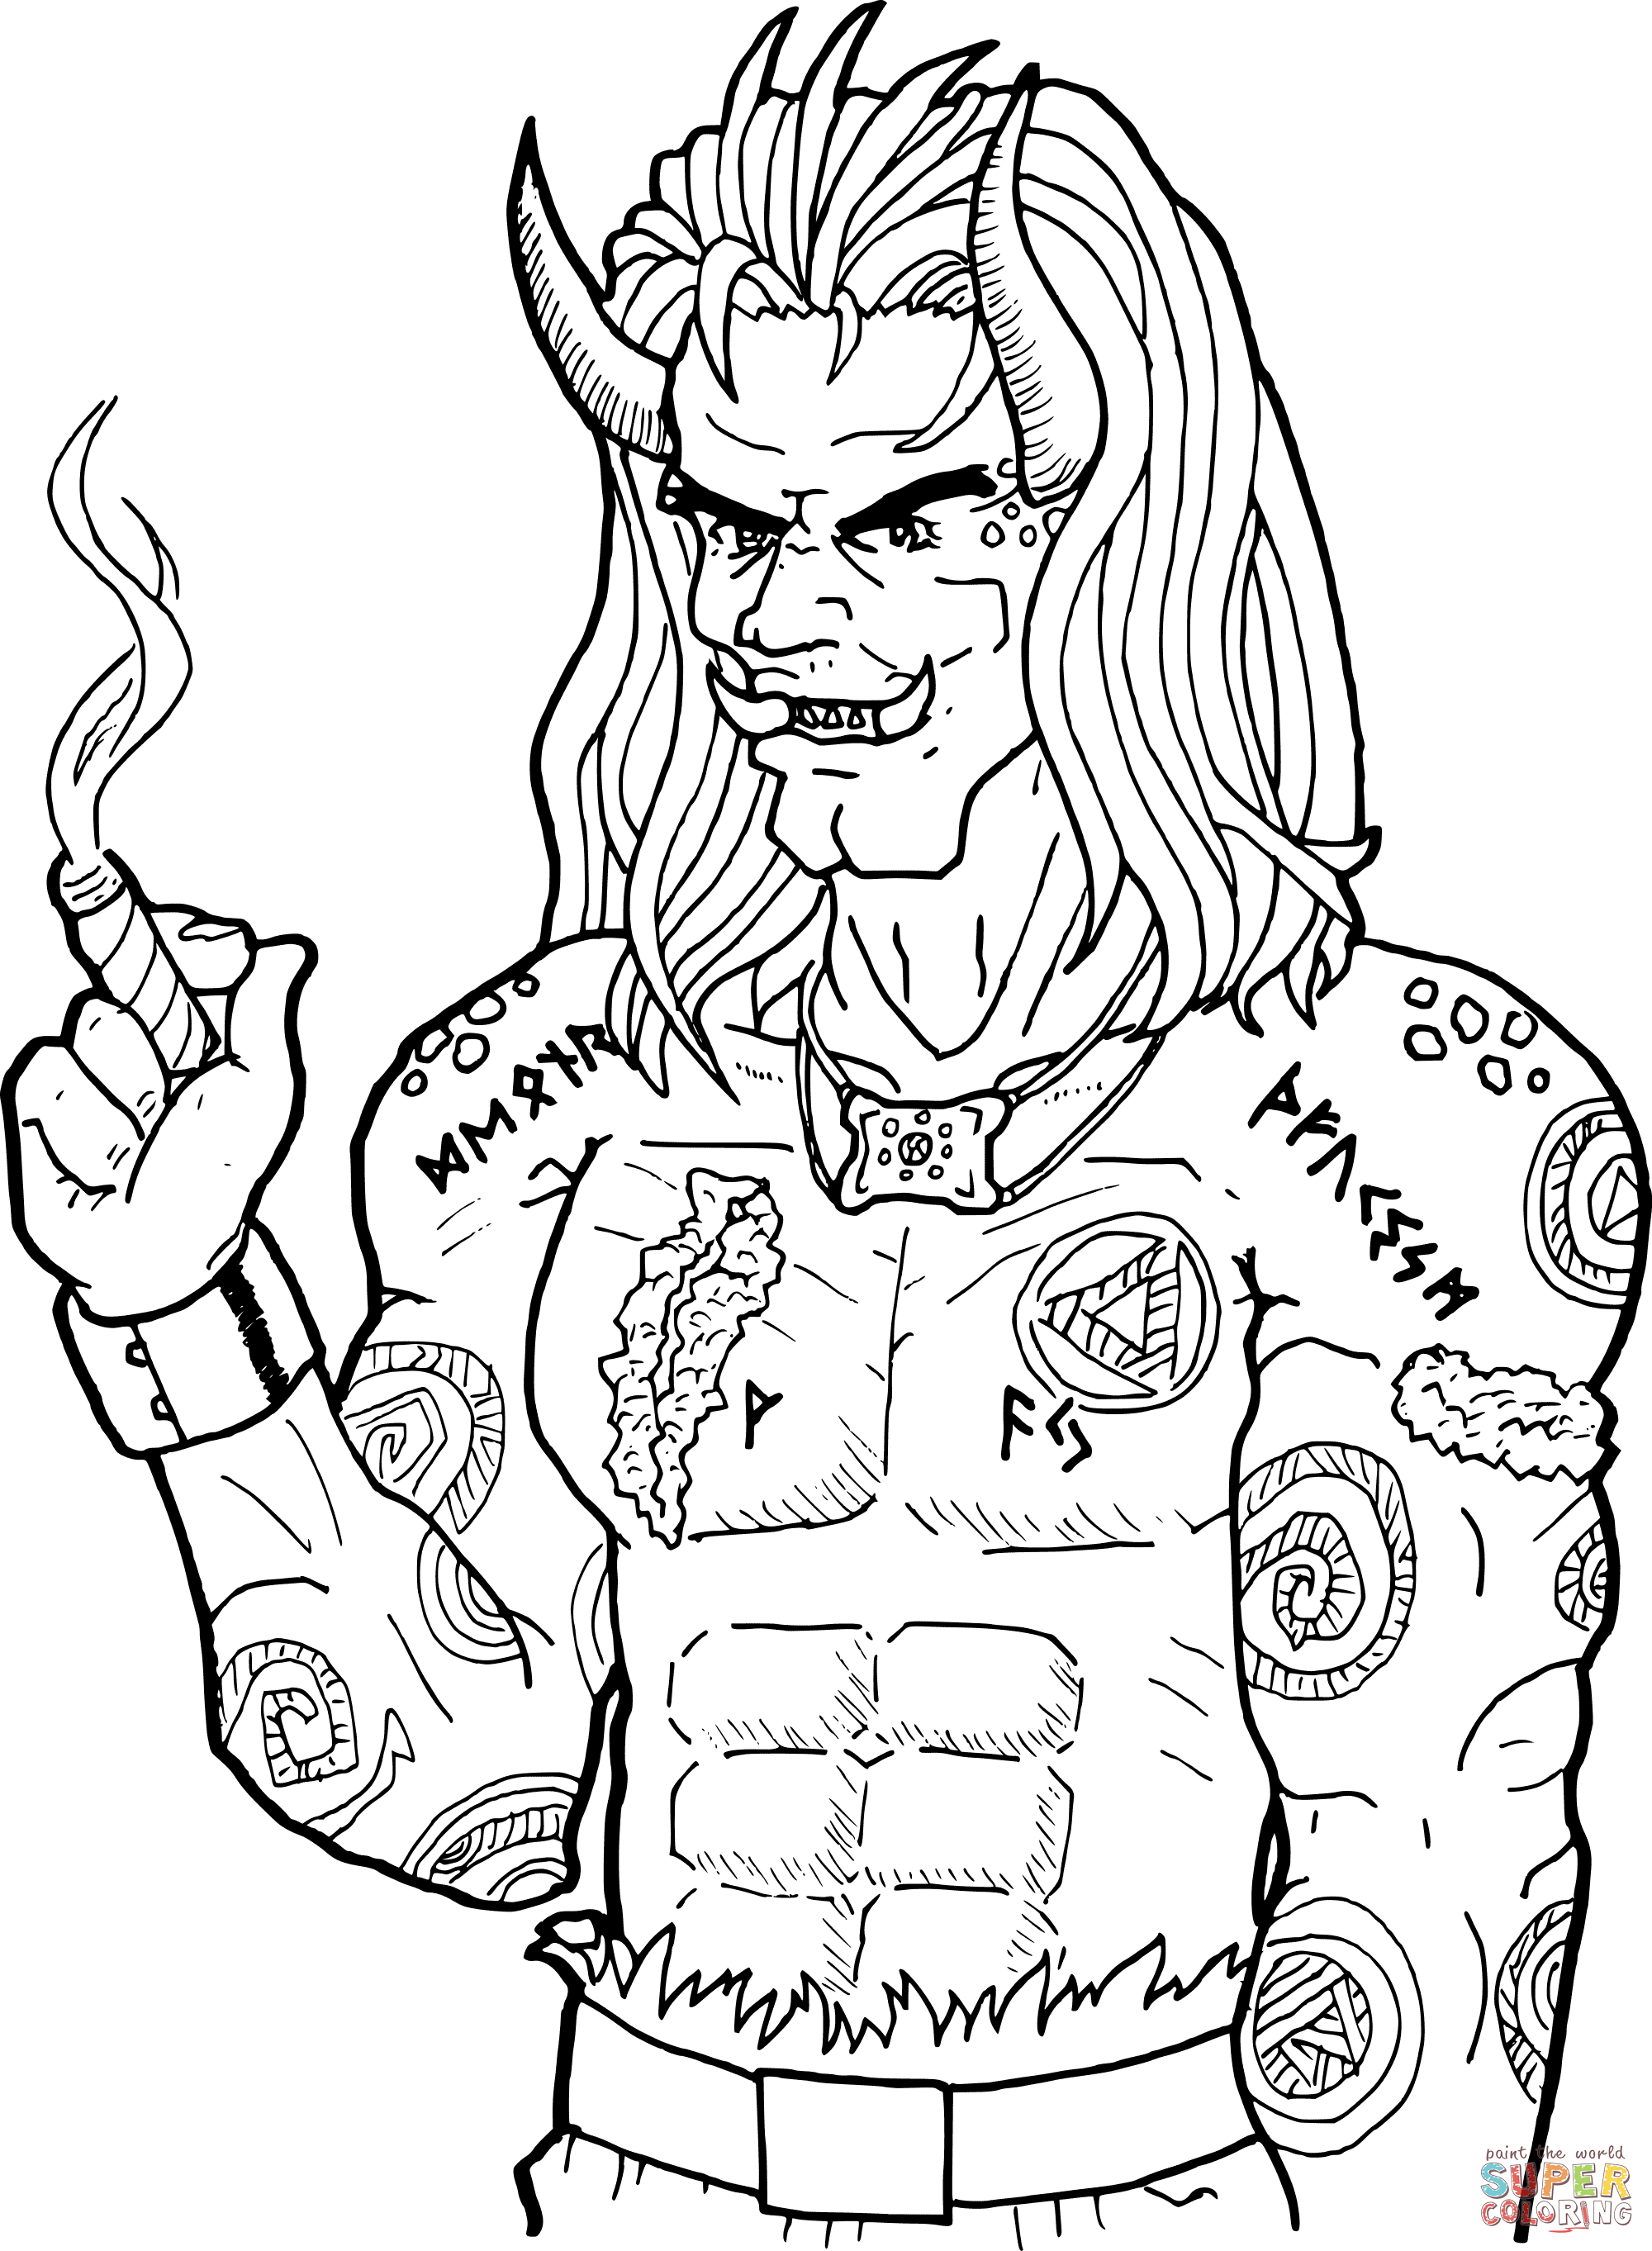 Ogre coloring page | Free Printable Coloring Pages